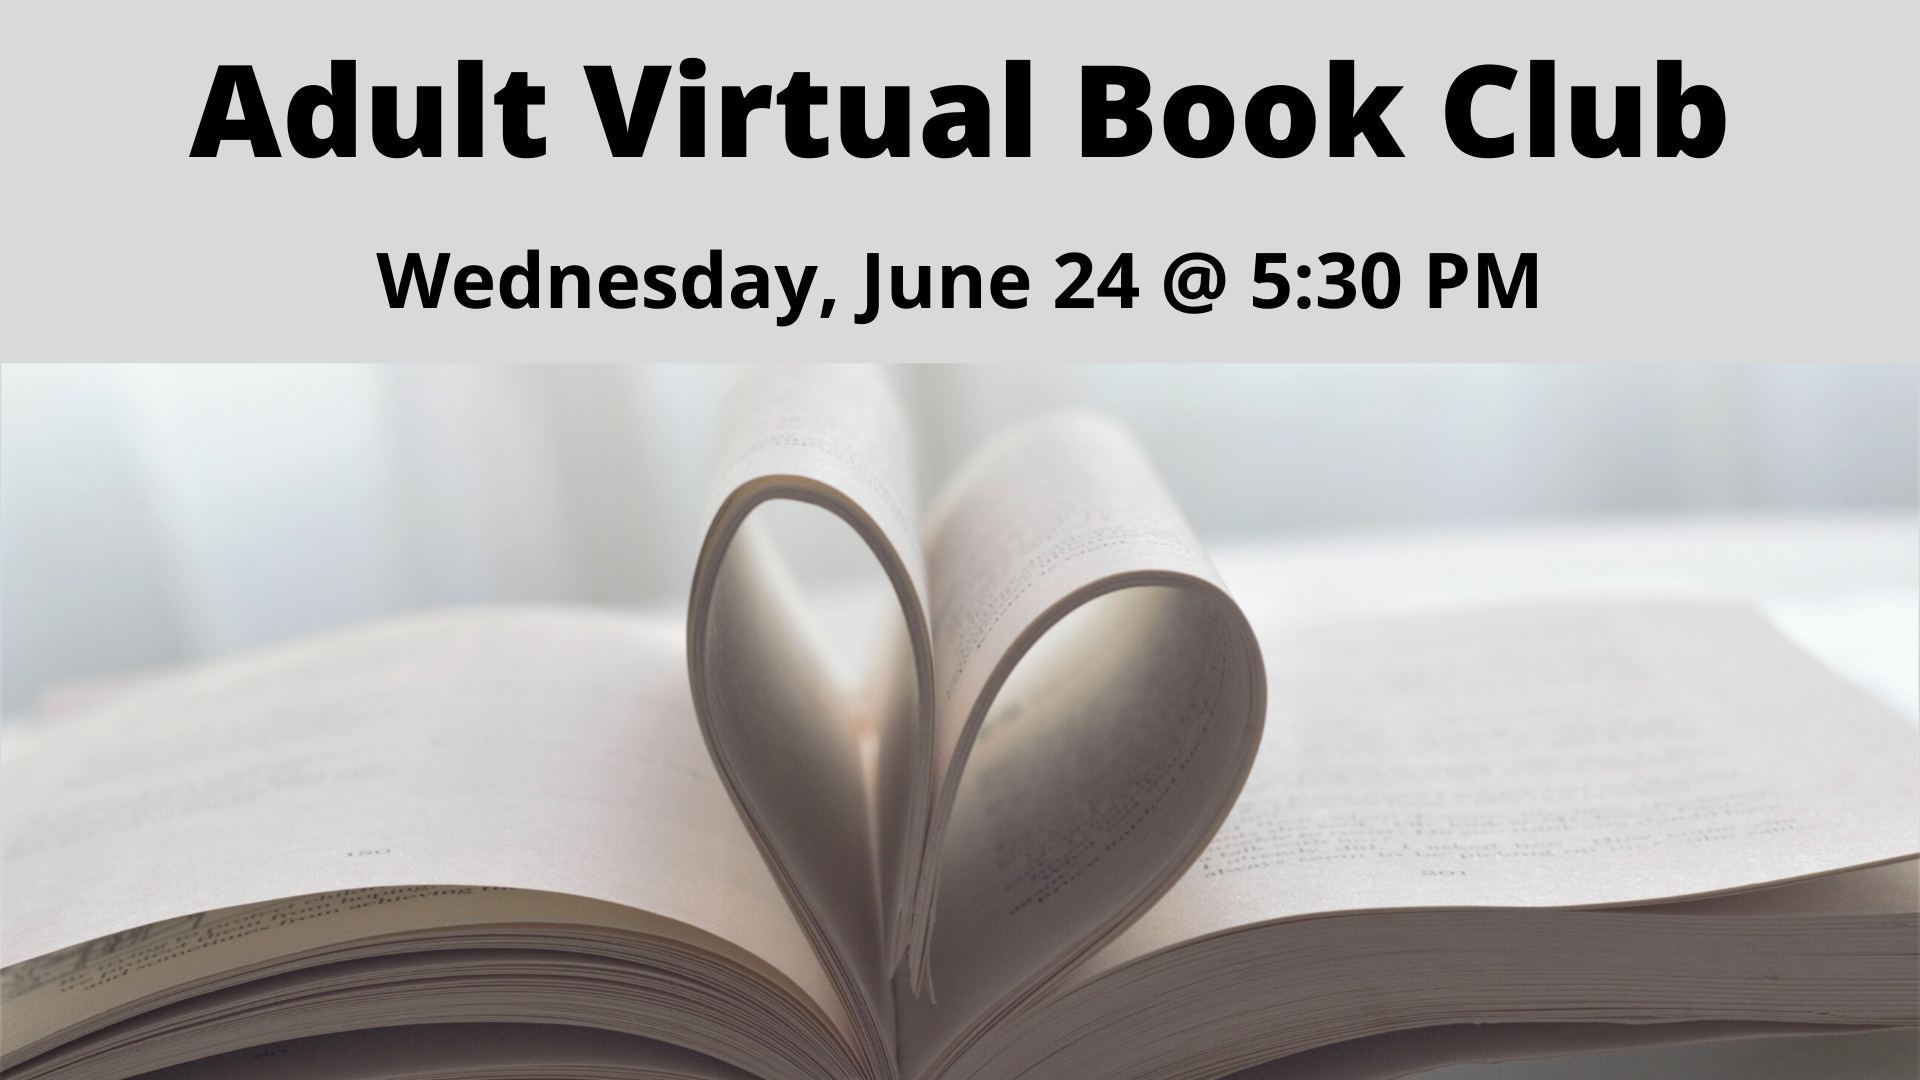 Adult Virtual Book Club